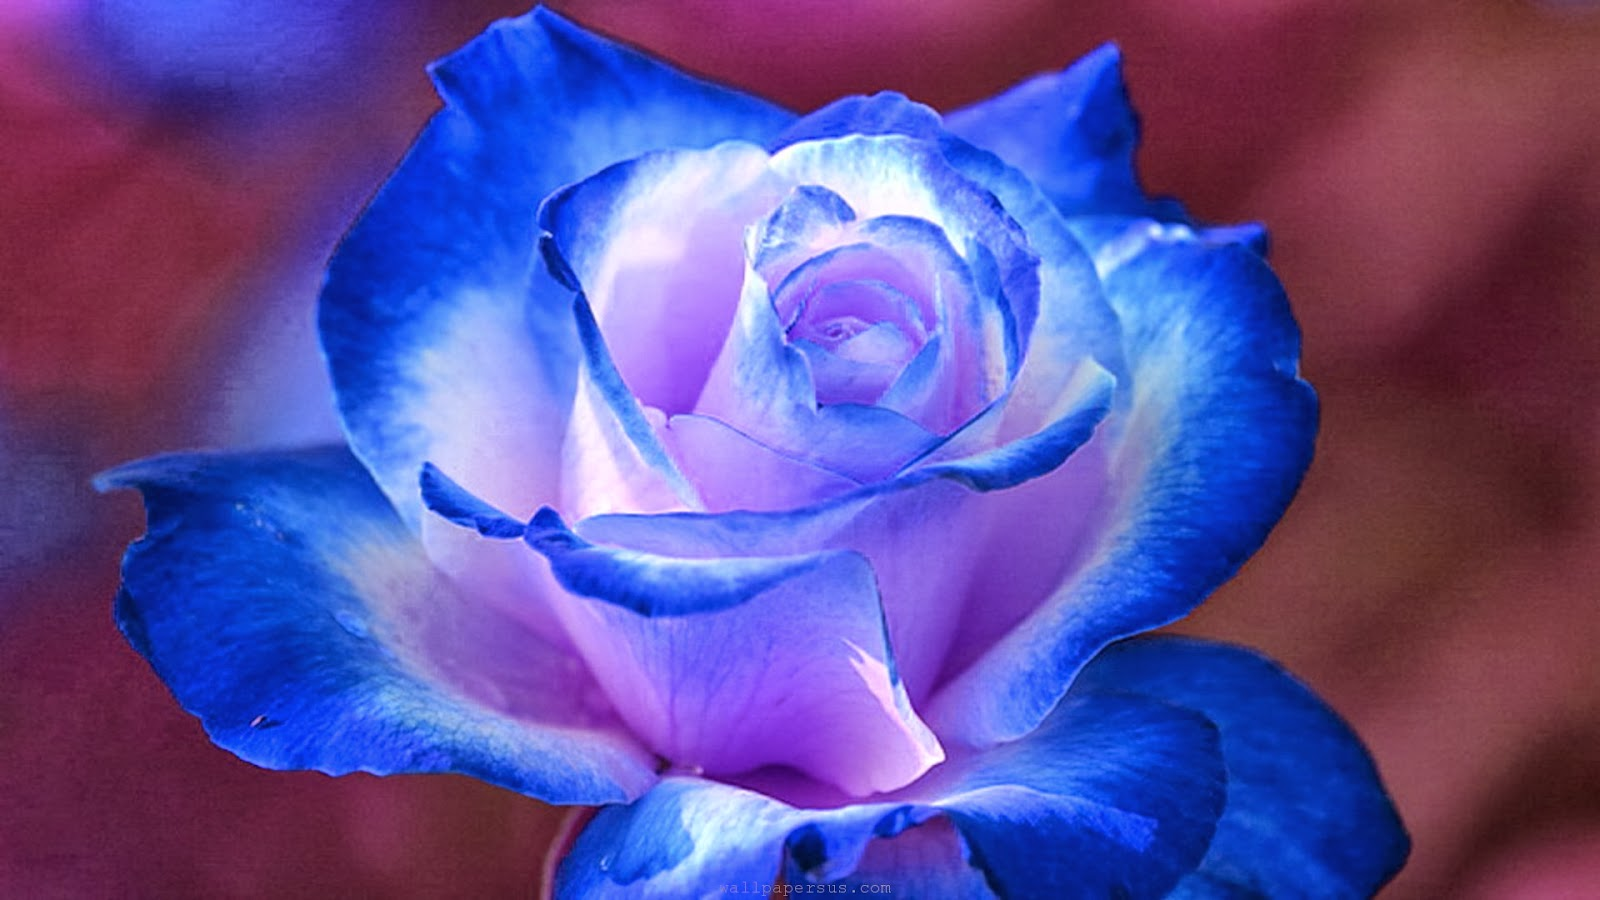 hd wallpapers desktop blue flower hd wallpapers